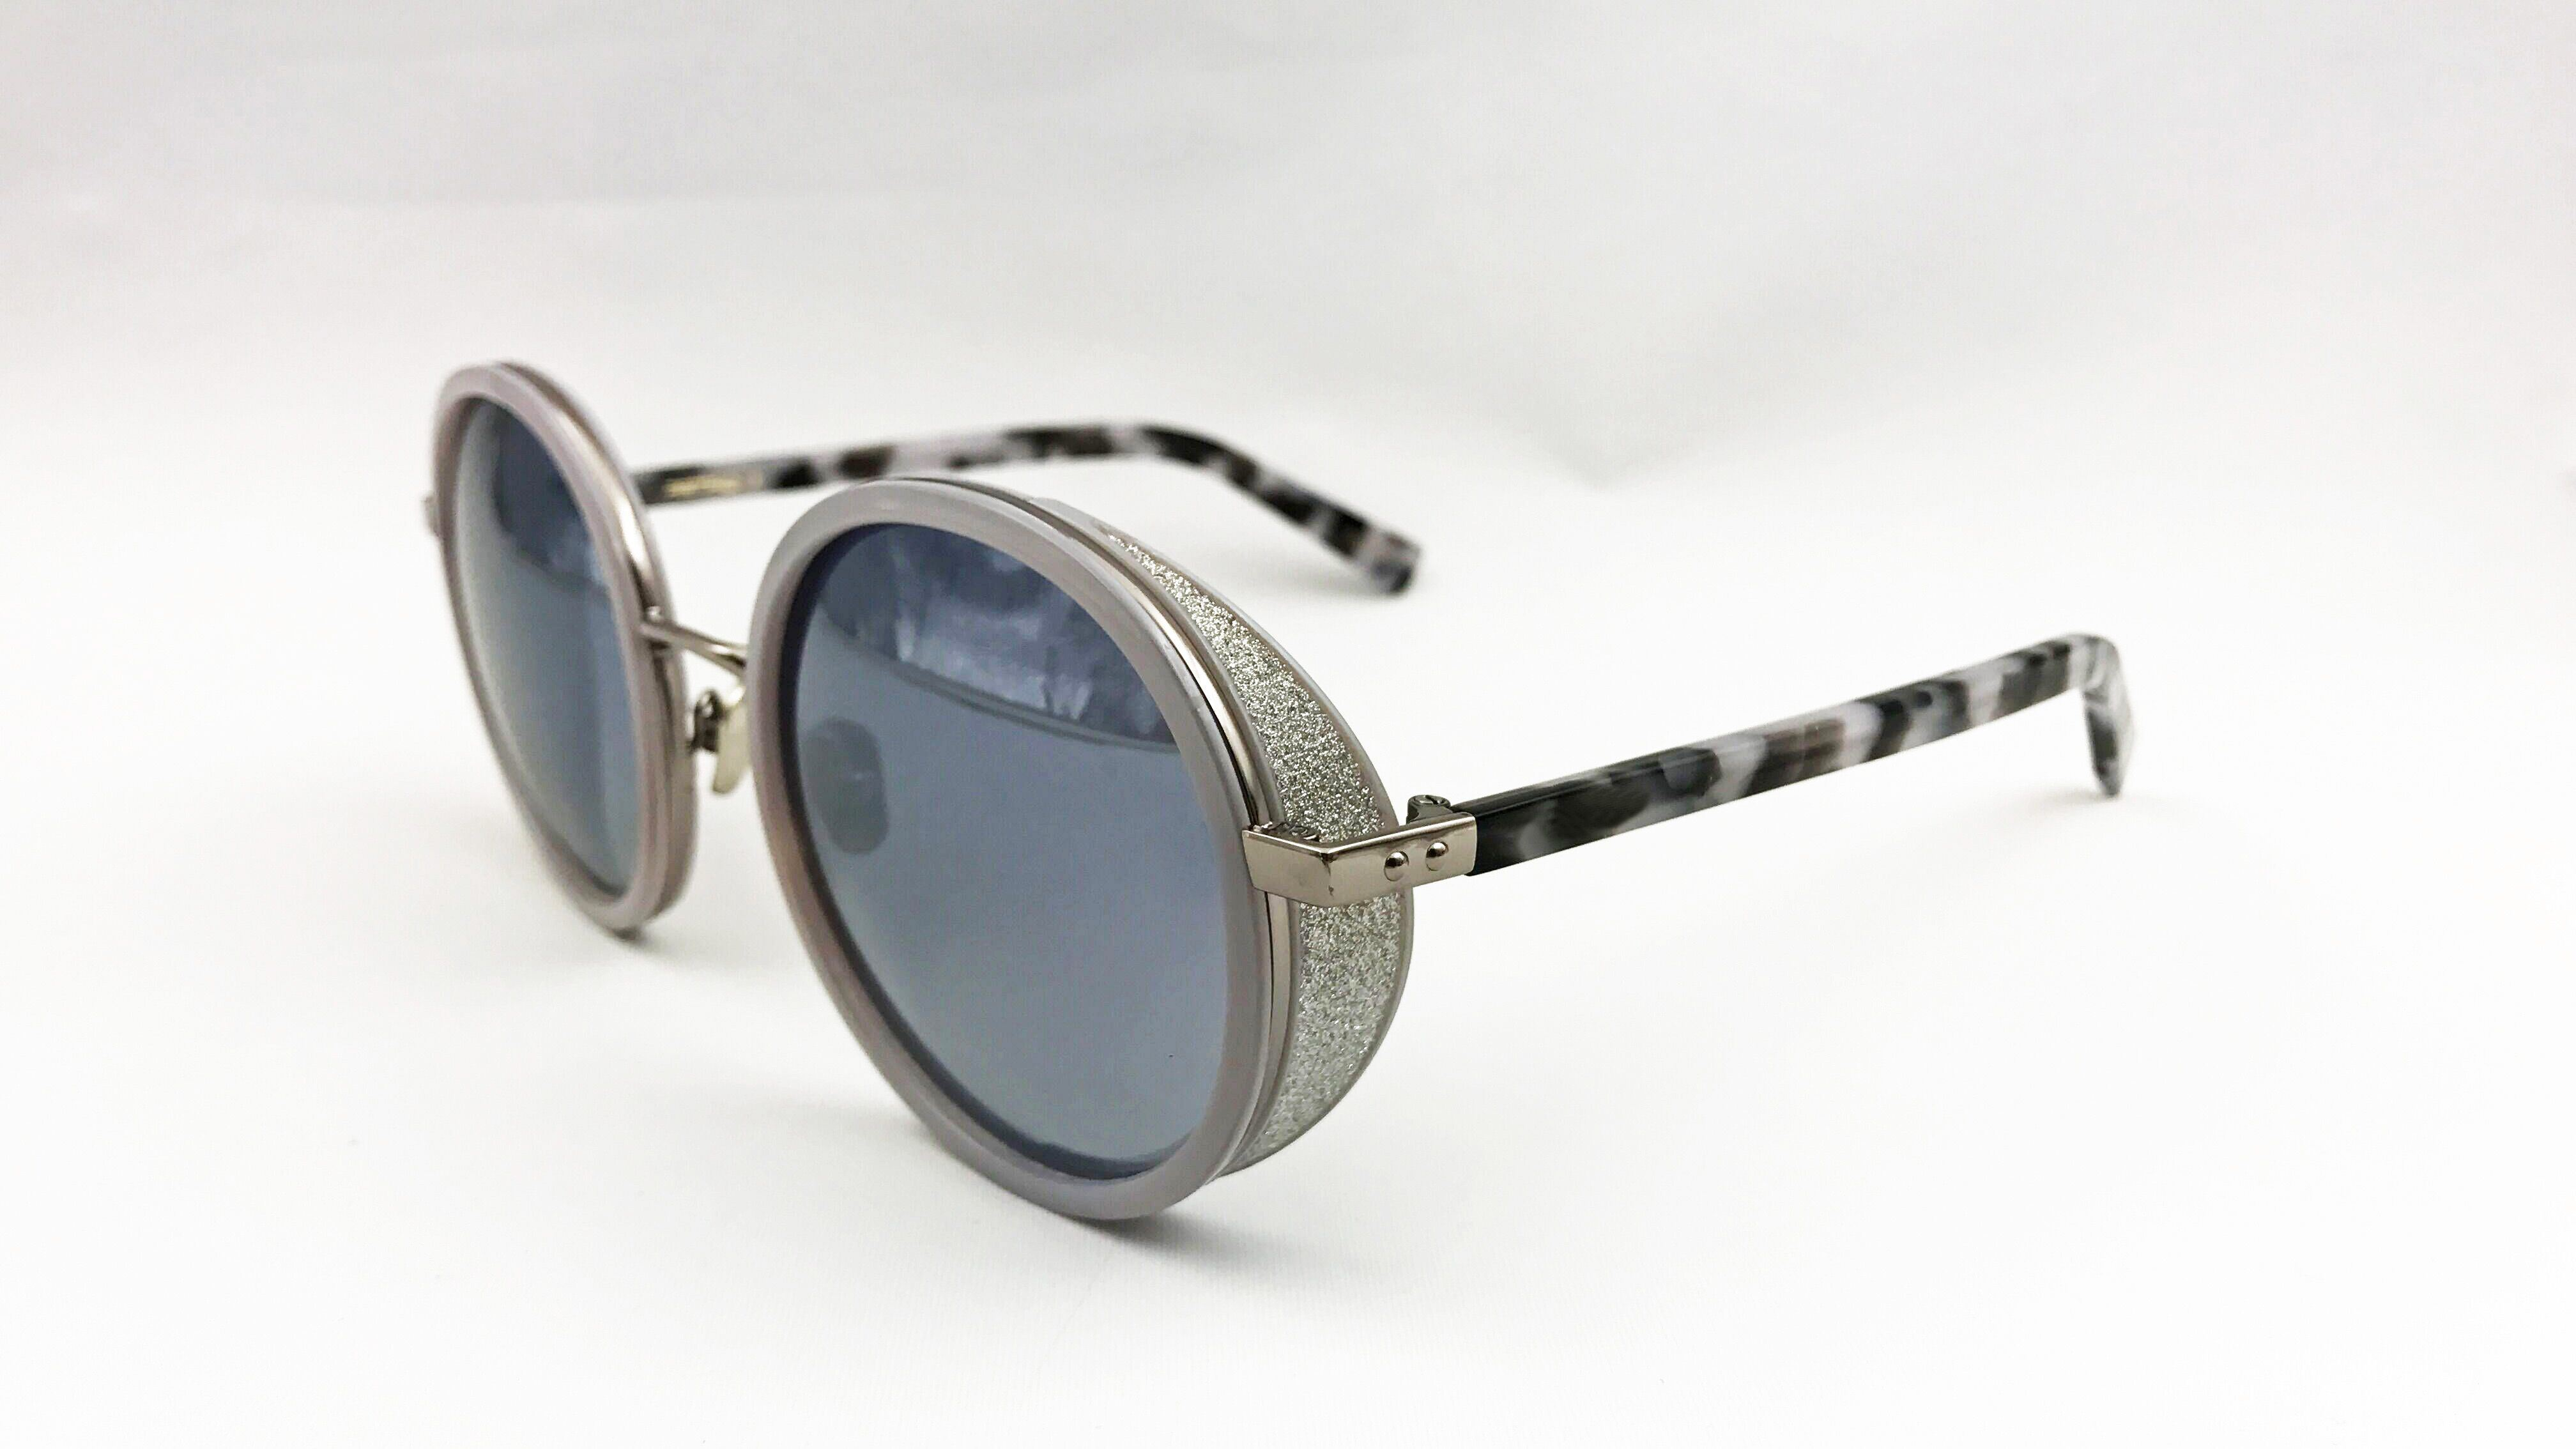 2017 Popular Jimmy Choo Style Sunglasses for Woman.